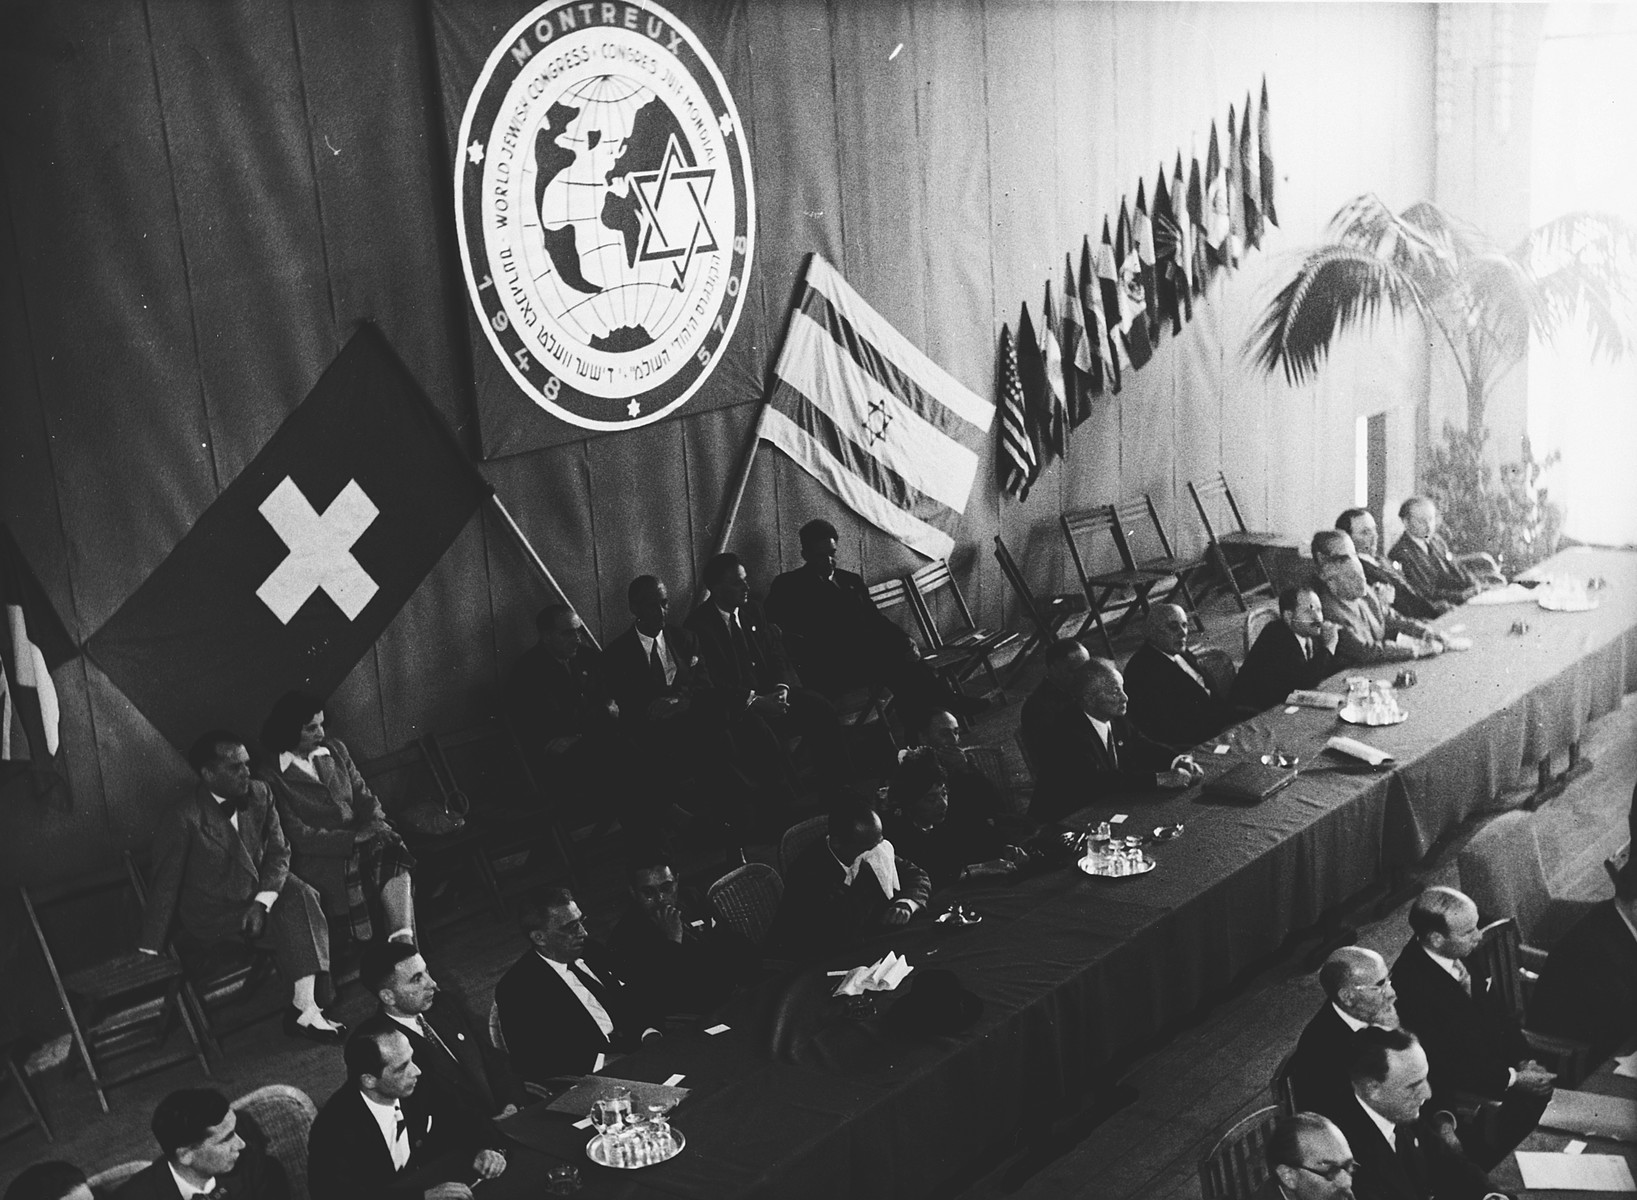 The Presidium at the opening session of the Assembly of the World Jewish Congress in Montreux, Switzerland. Among those pictured is Gerhart Riegner (second row, third from the left, bended forward).